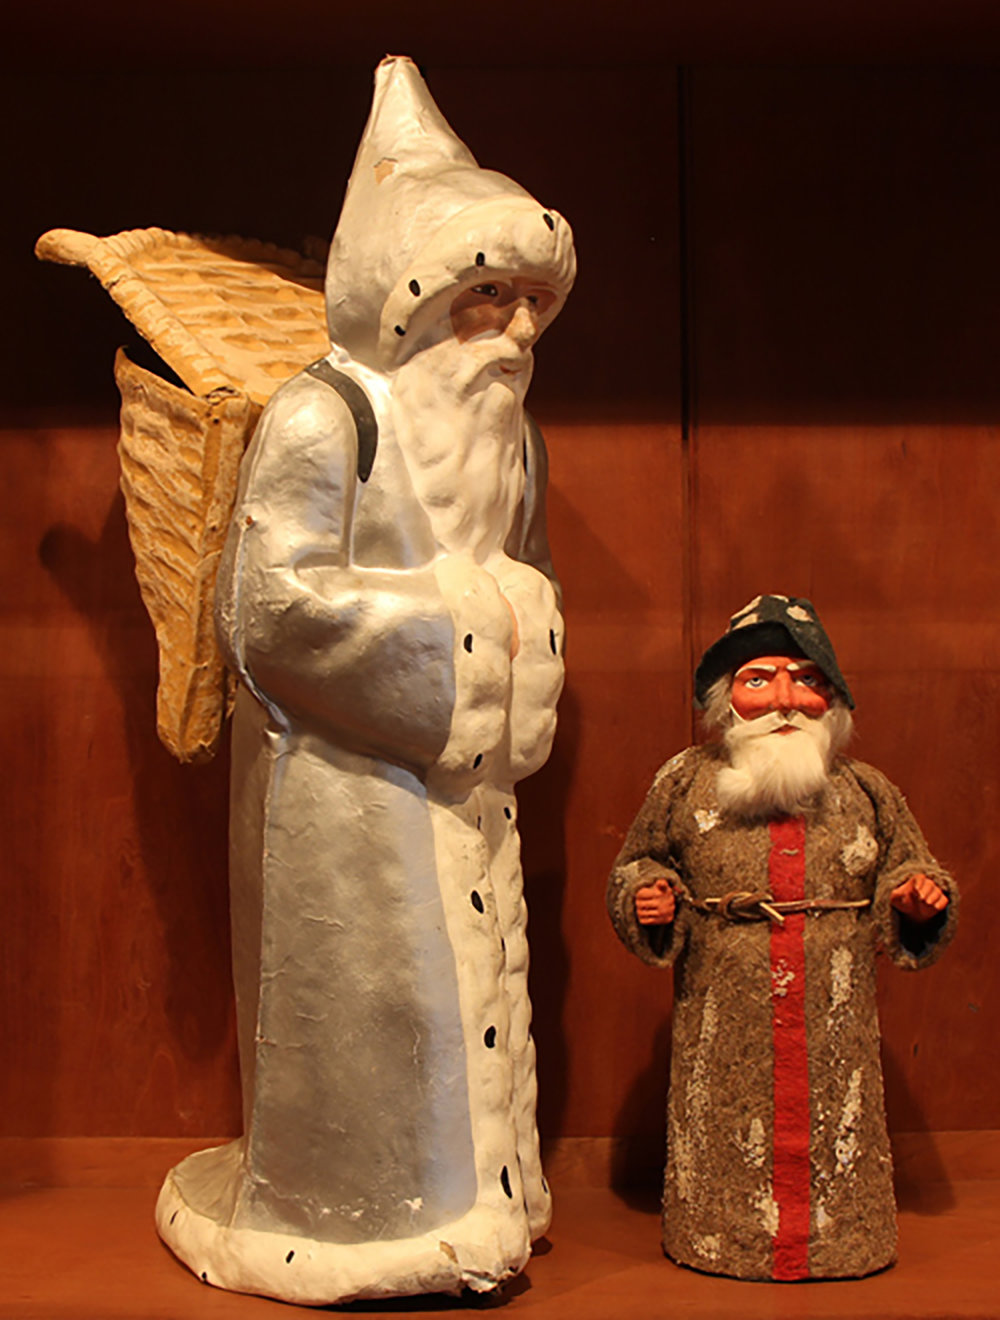 Figure 5: Left: Père Noël is the French equivalent of the American Santa Claus. He wears a long, hooded robe edged with white fur, and carries presents in a wicker basket like the ones traditionally used by grape harvesters. This papier-mâché figure of Père Noël, made in France around 1920, served as a candy container. Right: This St. Nicholas-shaped candy container, made in Germany around 1910, separates at the base and conceals a cylinder that held candy.